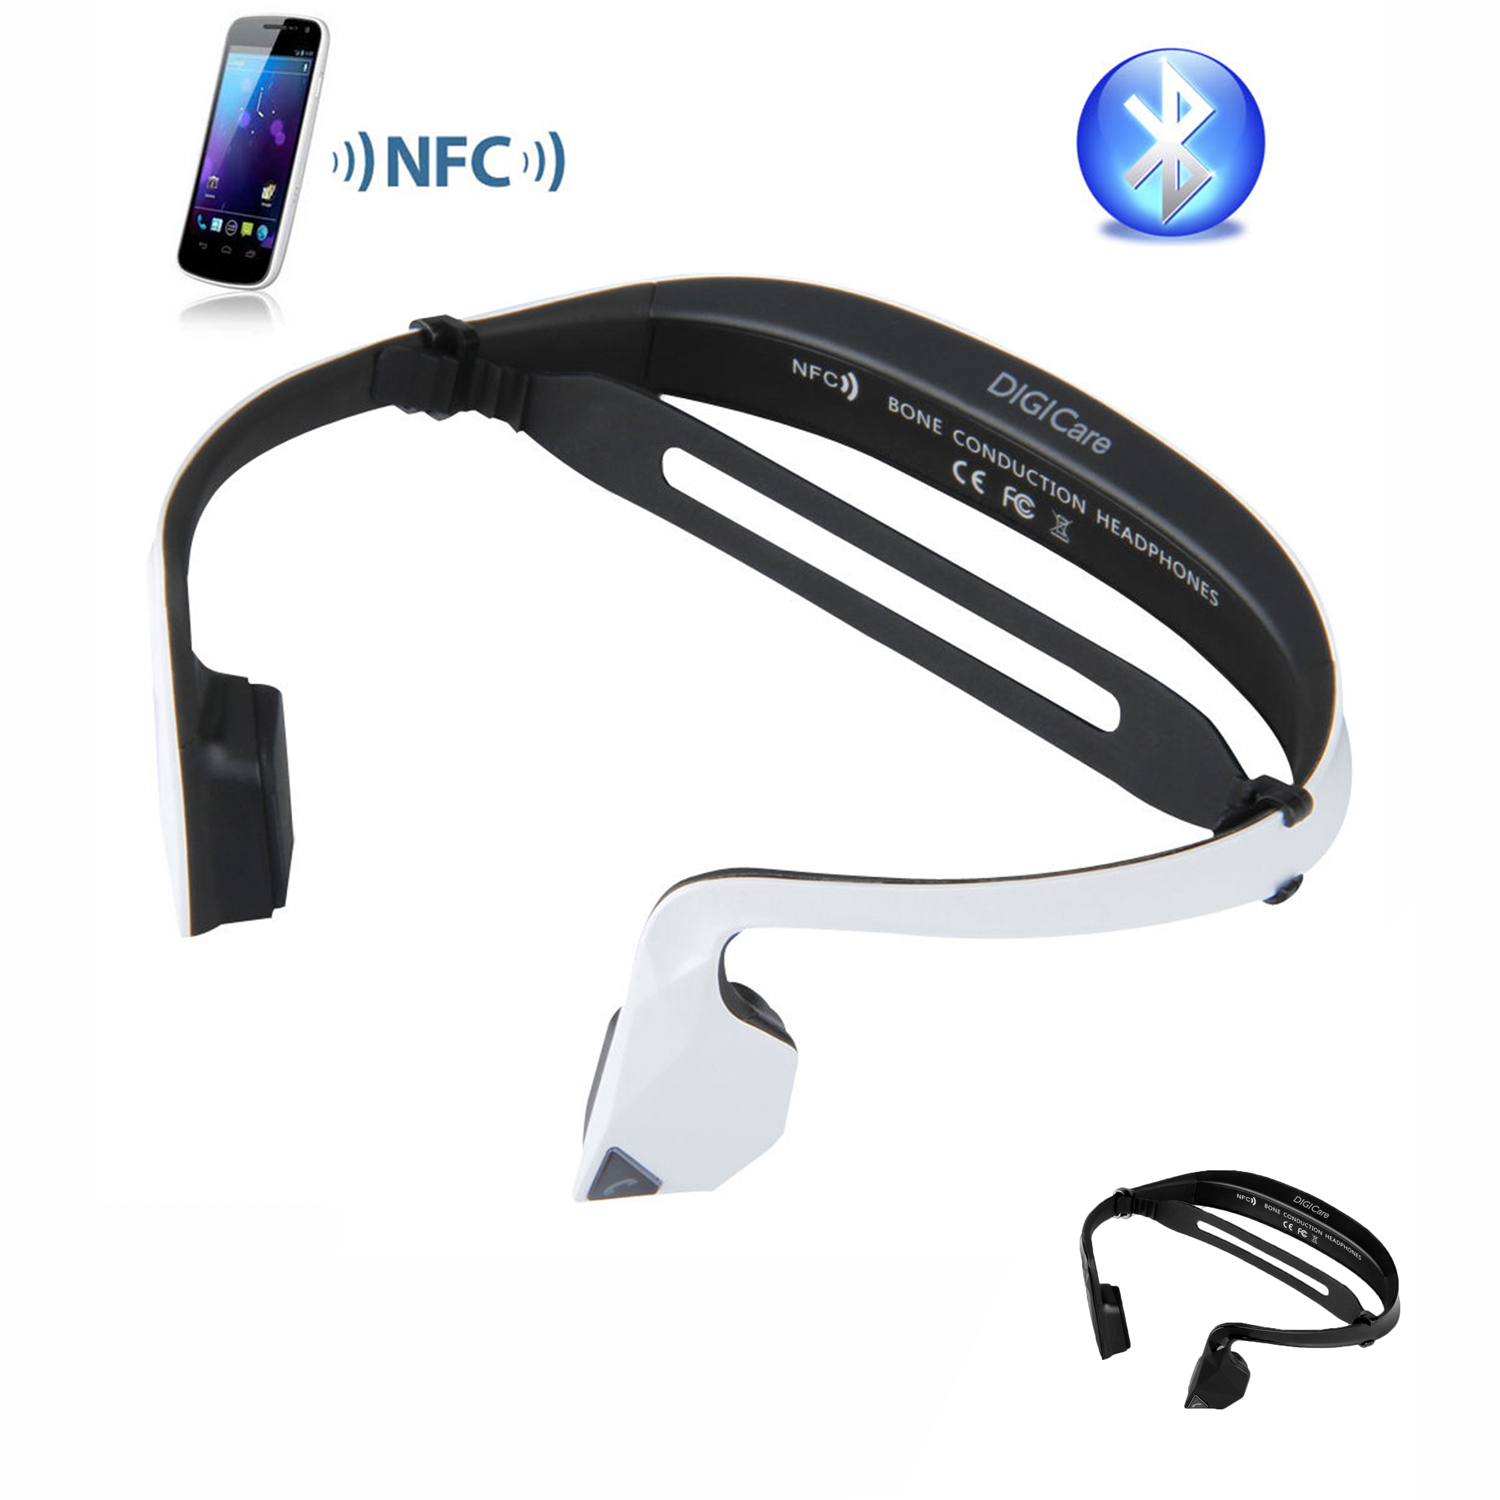 Фотография Wireless NFC Bluetooth Stereo Bone Conduction Headphone Headset with Built-in Microphone Black White